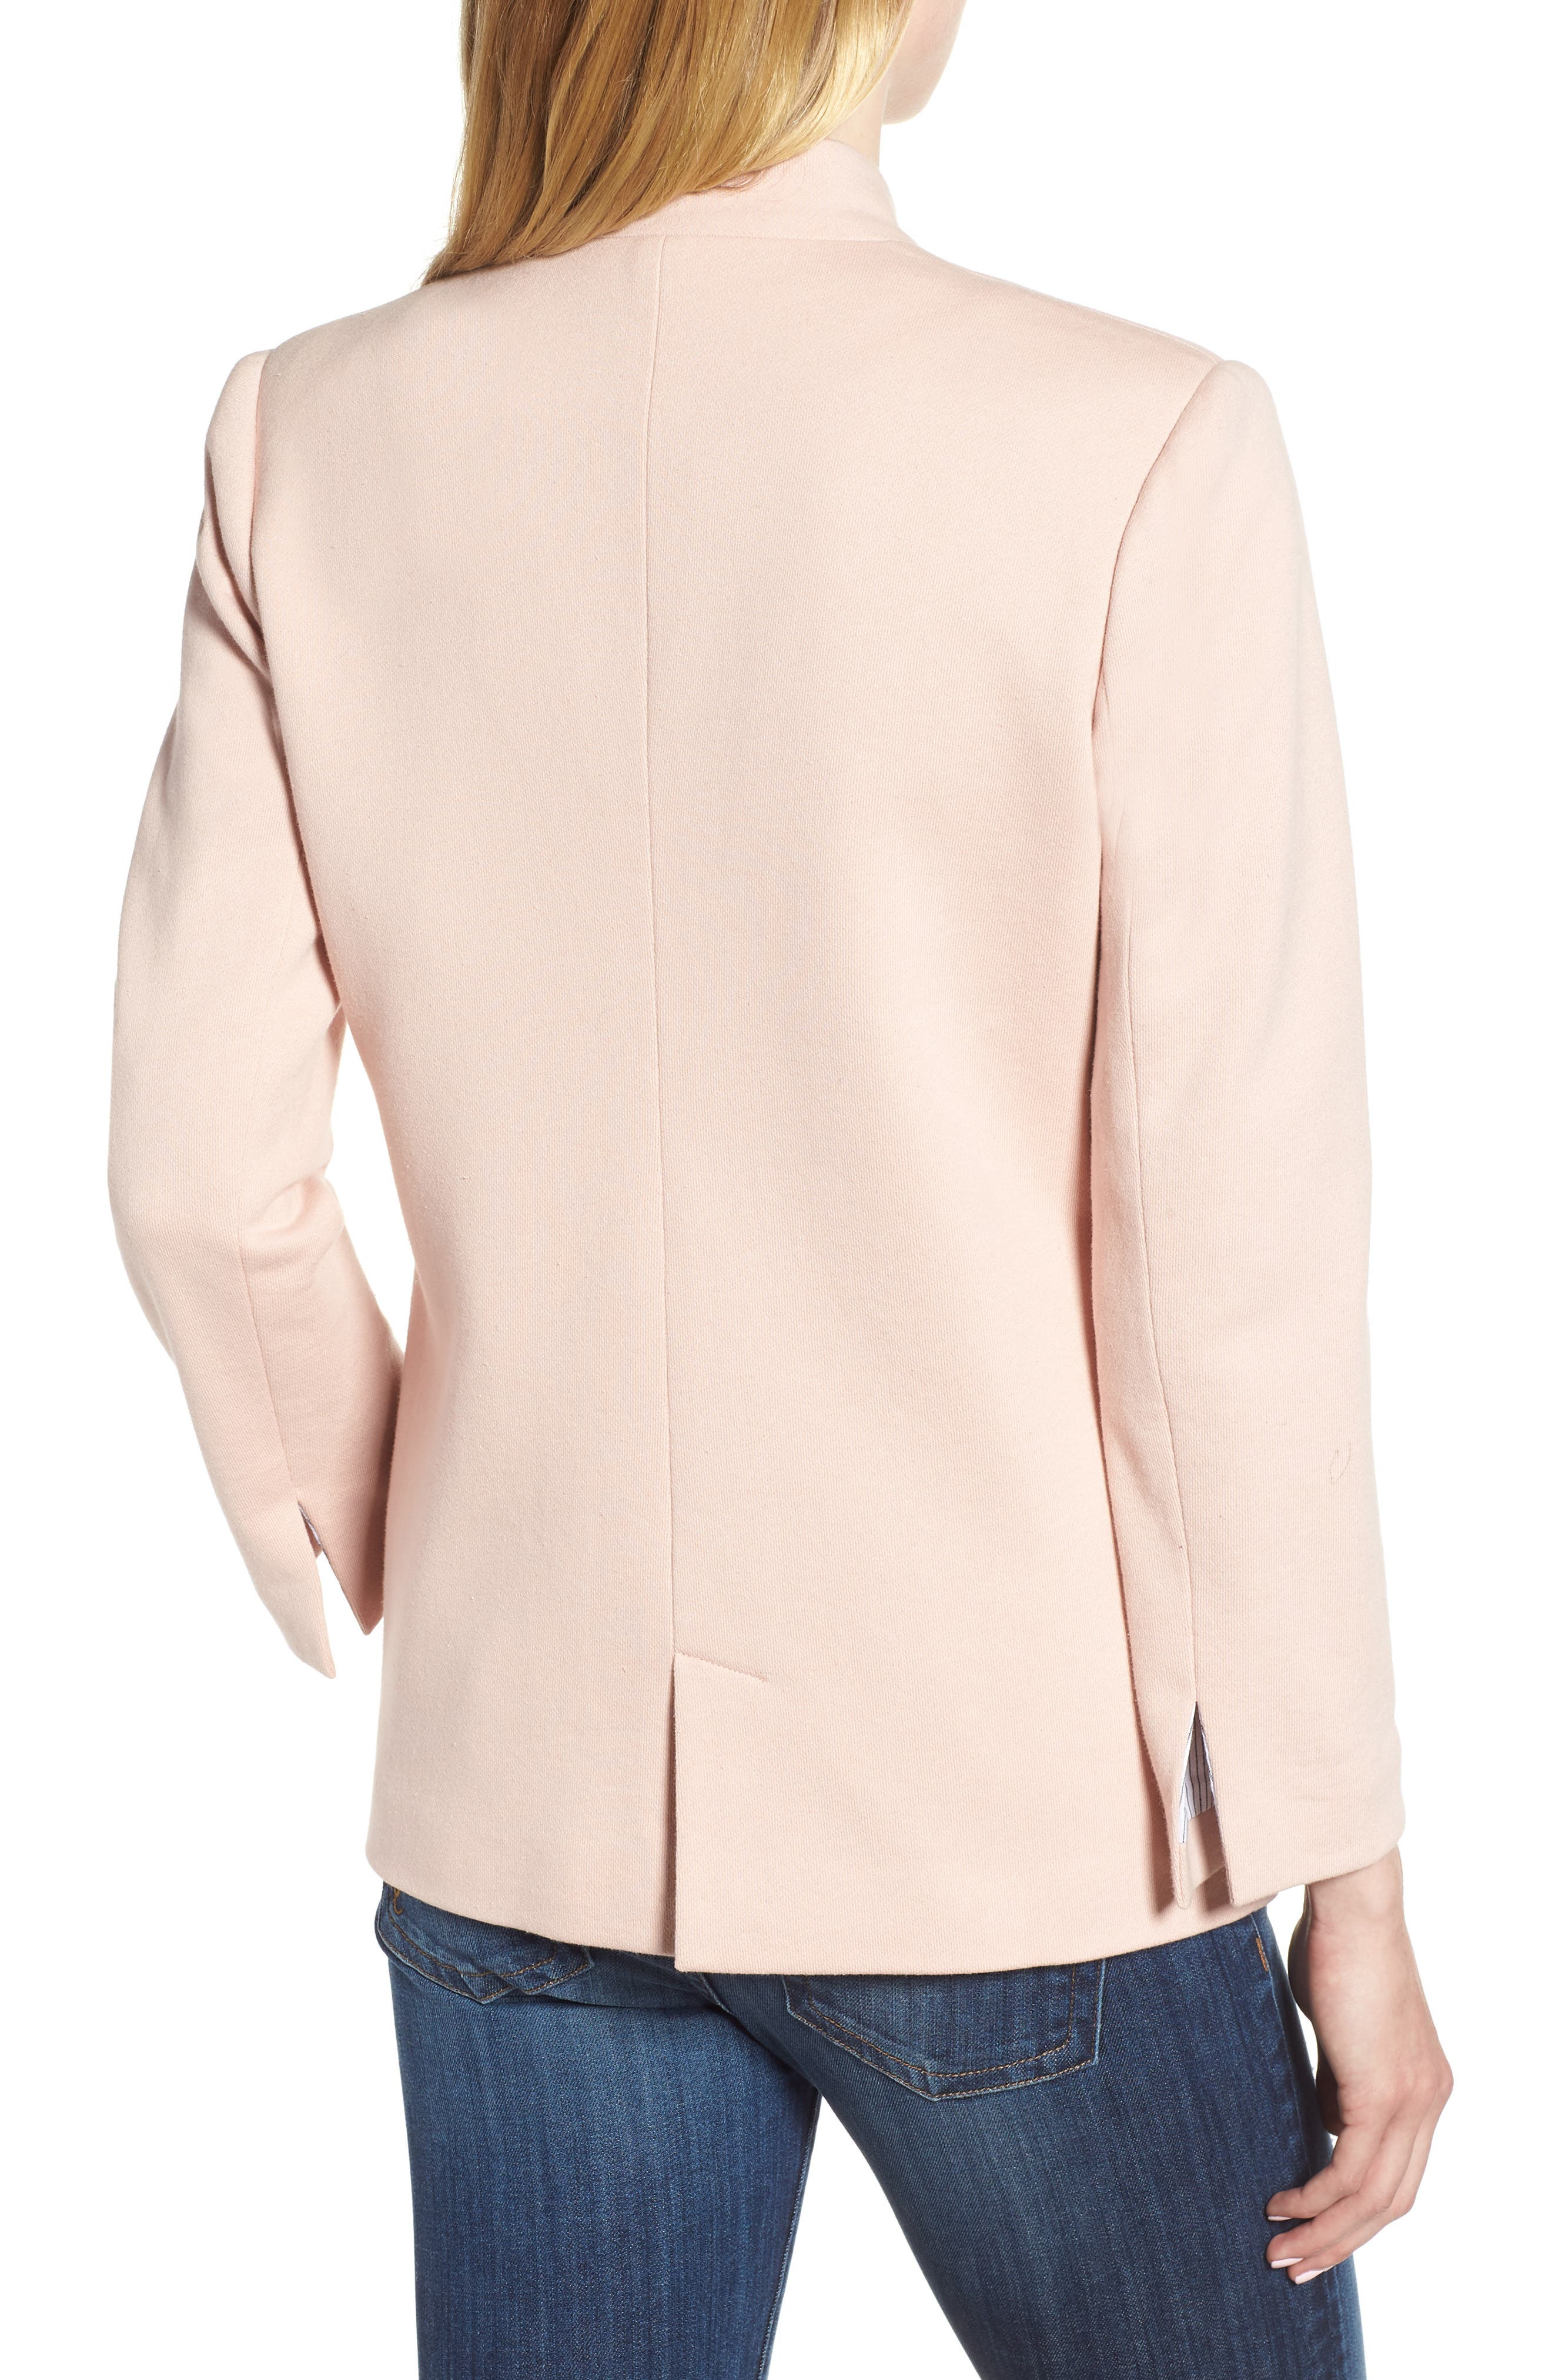 Cotton Blend Knit Blazer,                             Alternate thumbnail 2, color,                             Pink Smoke